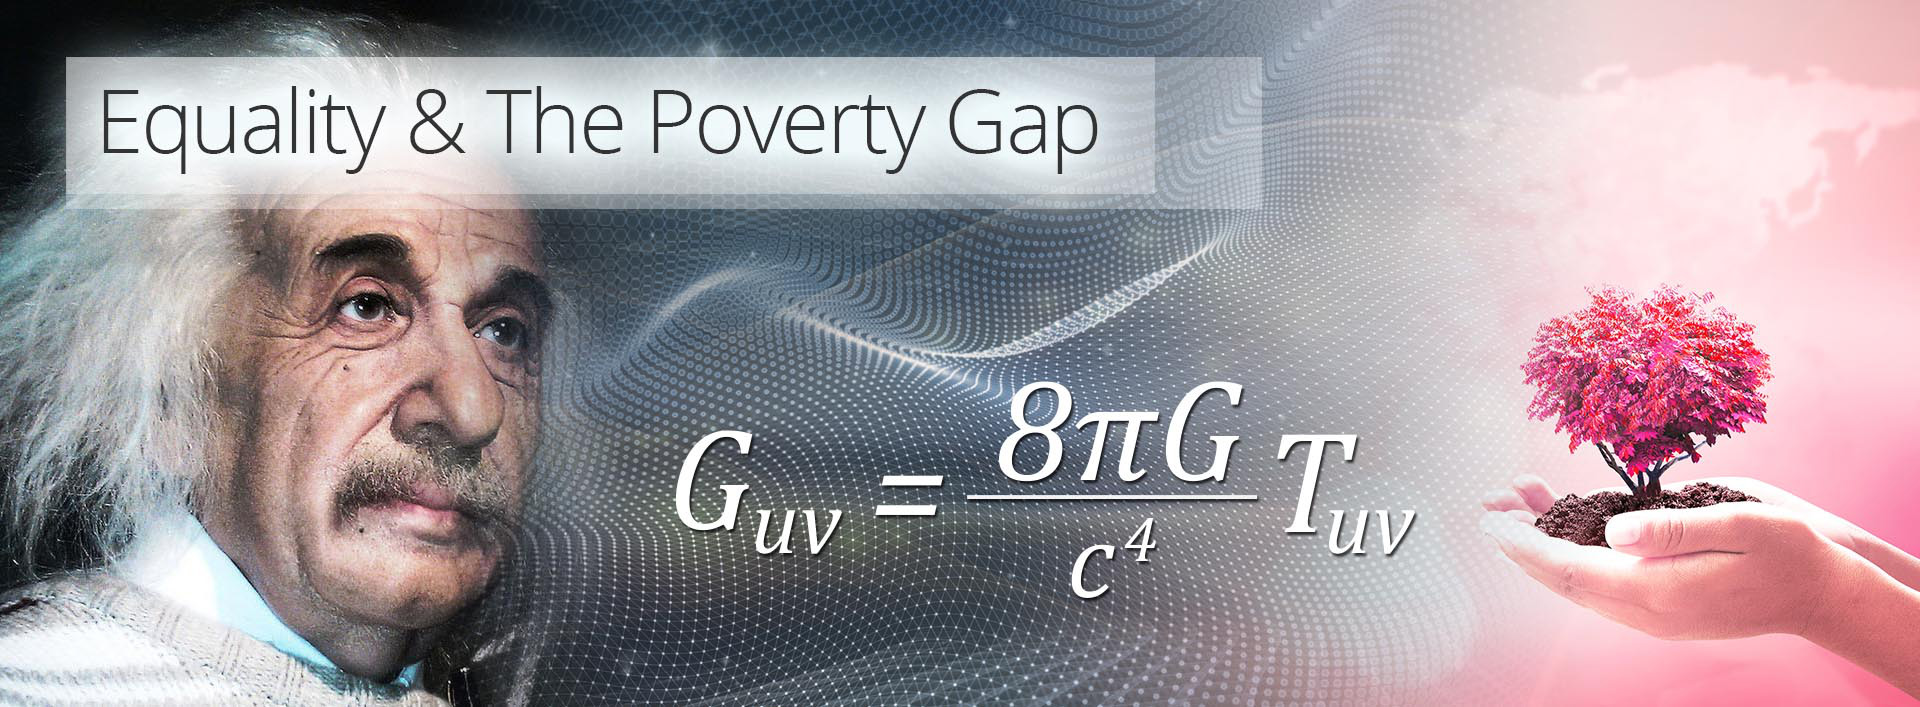 equality & the poverty gap - the theory of everything